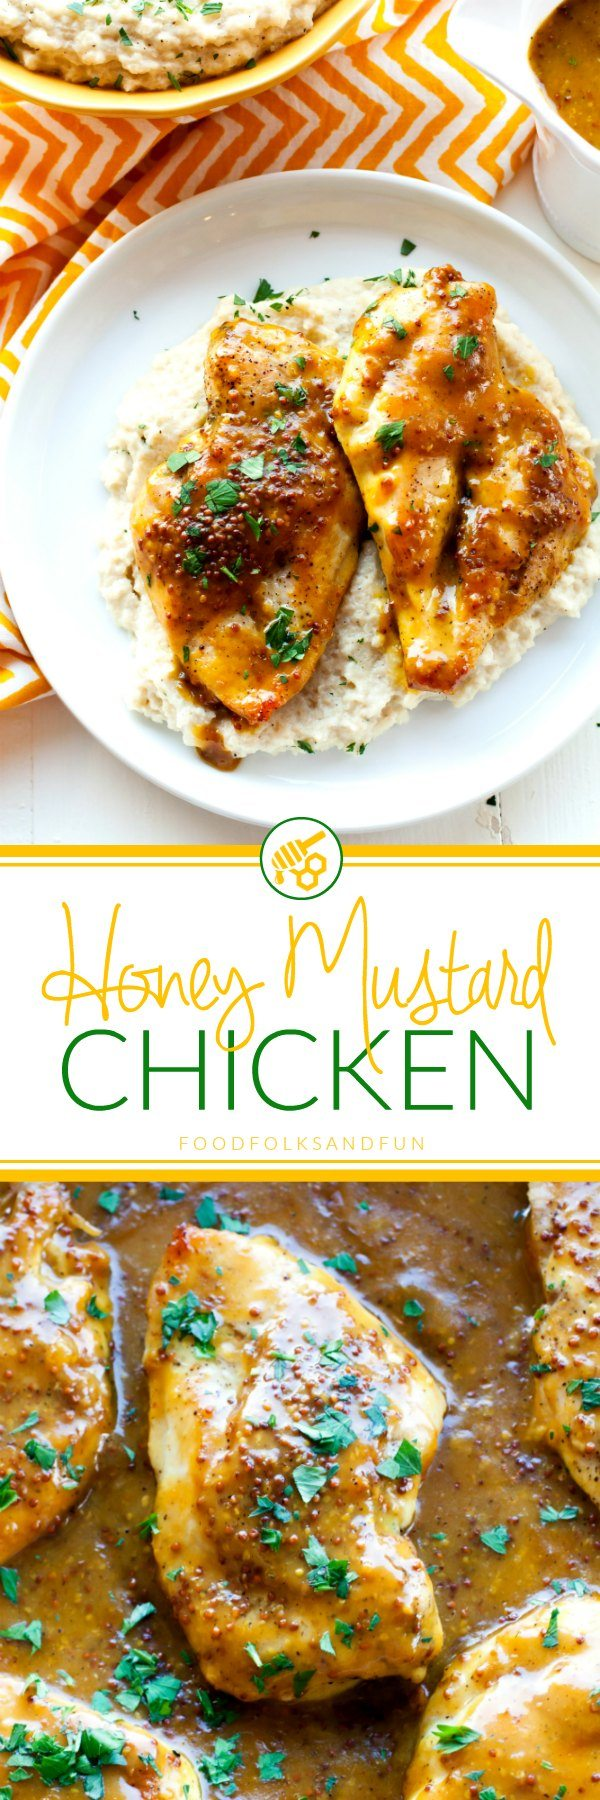 Saucy, tangy, succulent Honey Mustard Chicken is a tasty weeknight meal that everyone will not just love, but DEVOUR! Give yourself 18 minutes and dinner is served with this quick and easy dinner recipe! via @foodfolksandfun